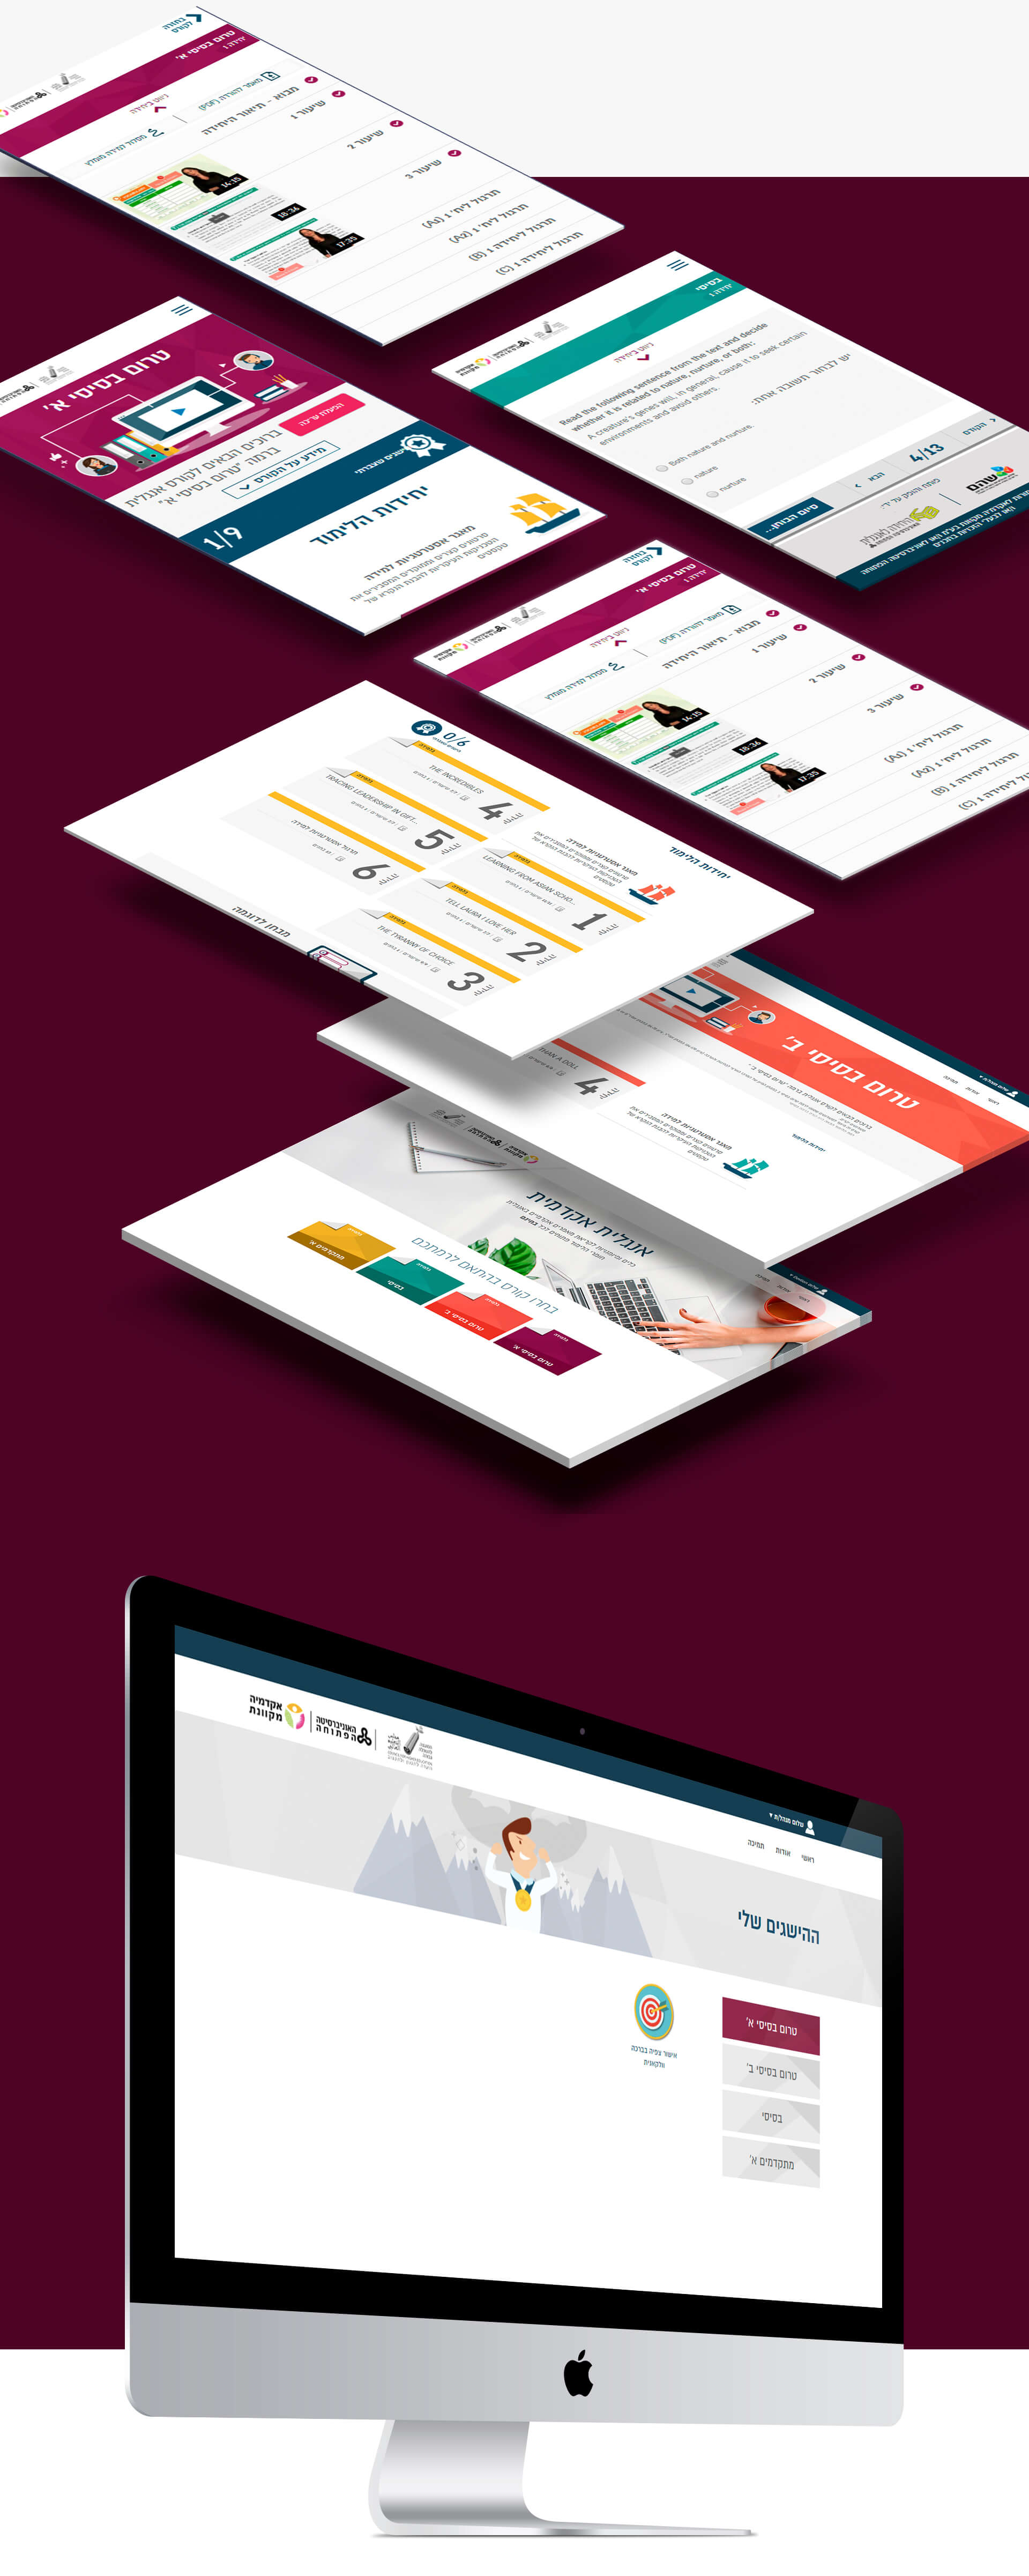 Customizate Enlight theme for Moodle 2.9 to new responsive design